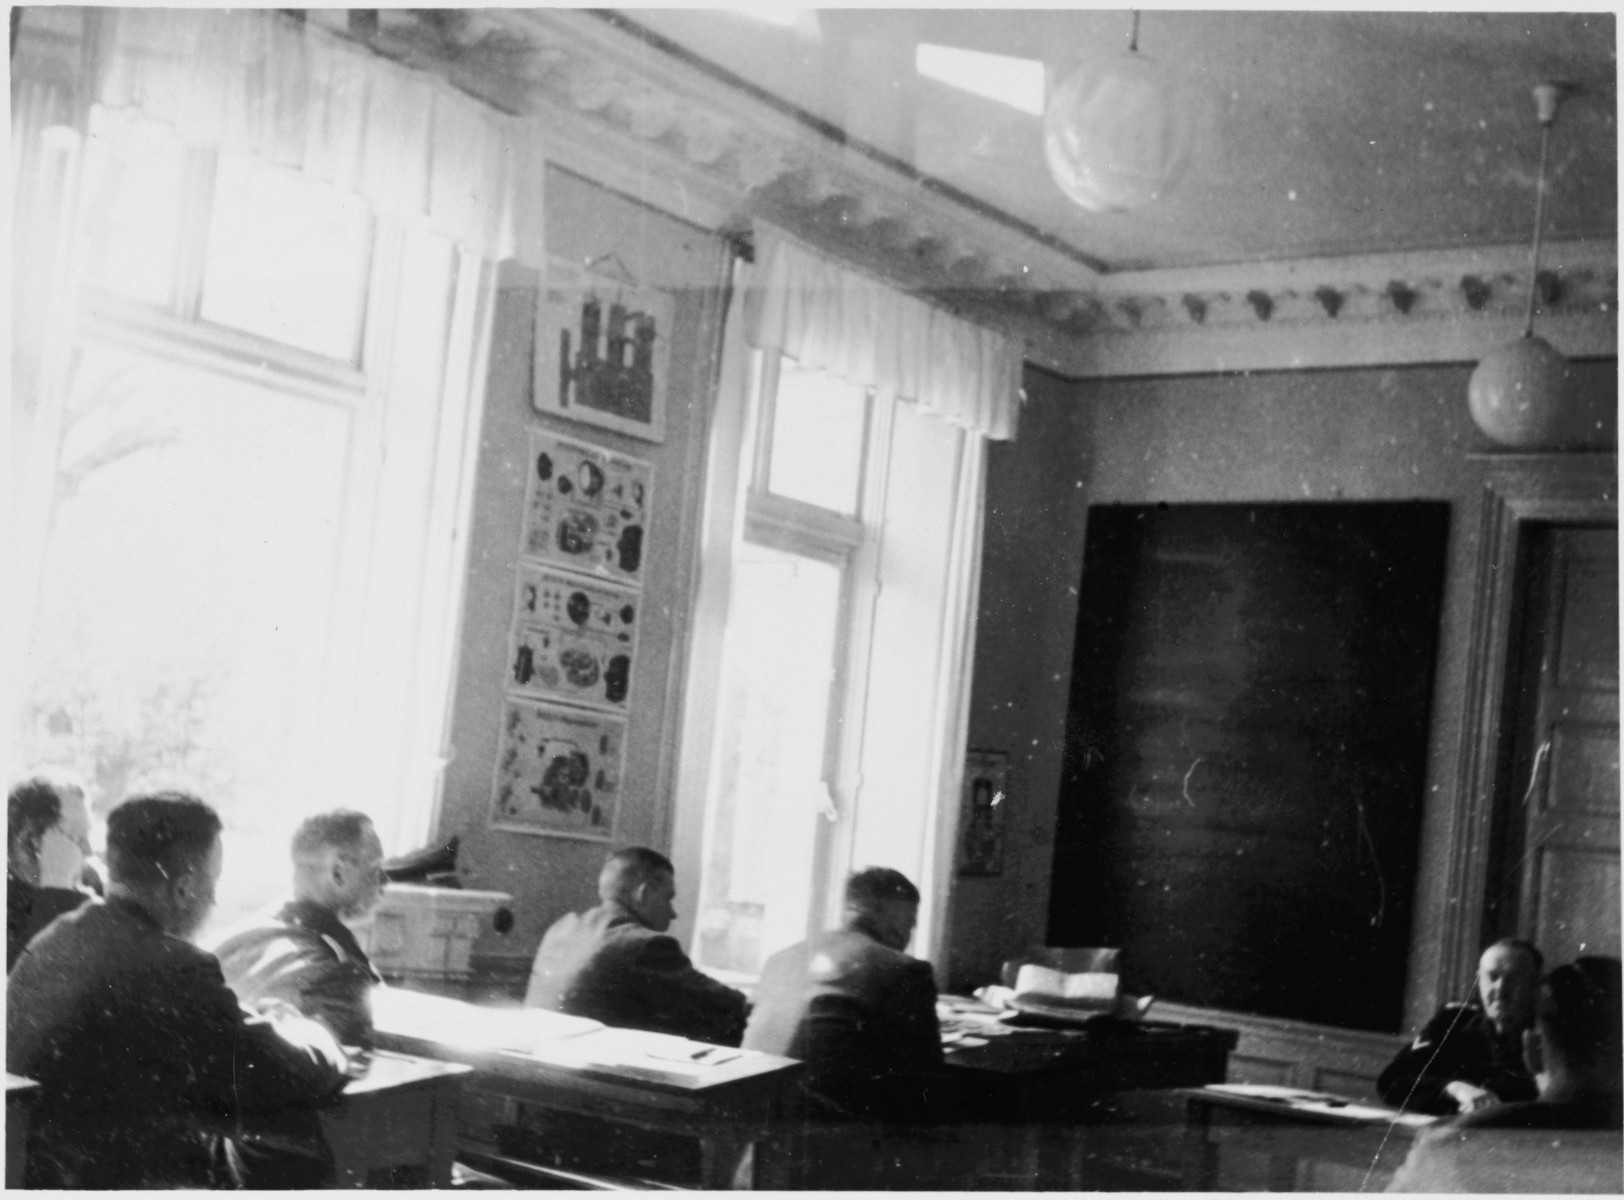 """SS officers sit in a classroom in the Hinzert concentration camp (a sub-camp of Buchenwald).  The classroom has been tentatively identified as the """"Schulungsraum""""  (training room) and the instructor as Prof. Dr. Gustav Riek.  The photograph may have been taken May 7, 1941, during the inspection visit of Adolf Kleffel and others."""